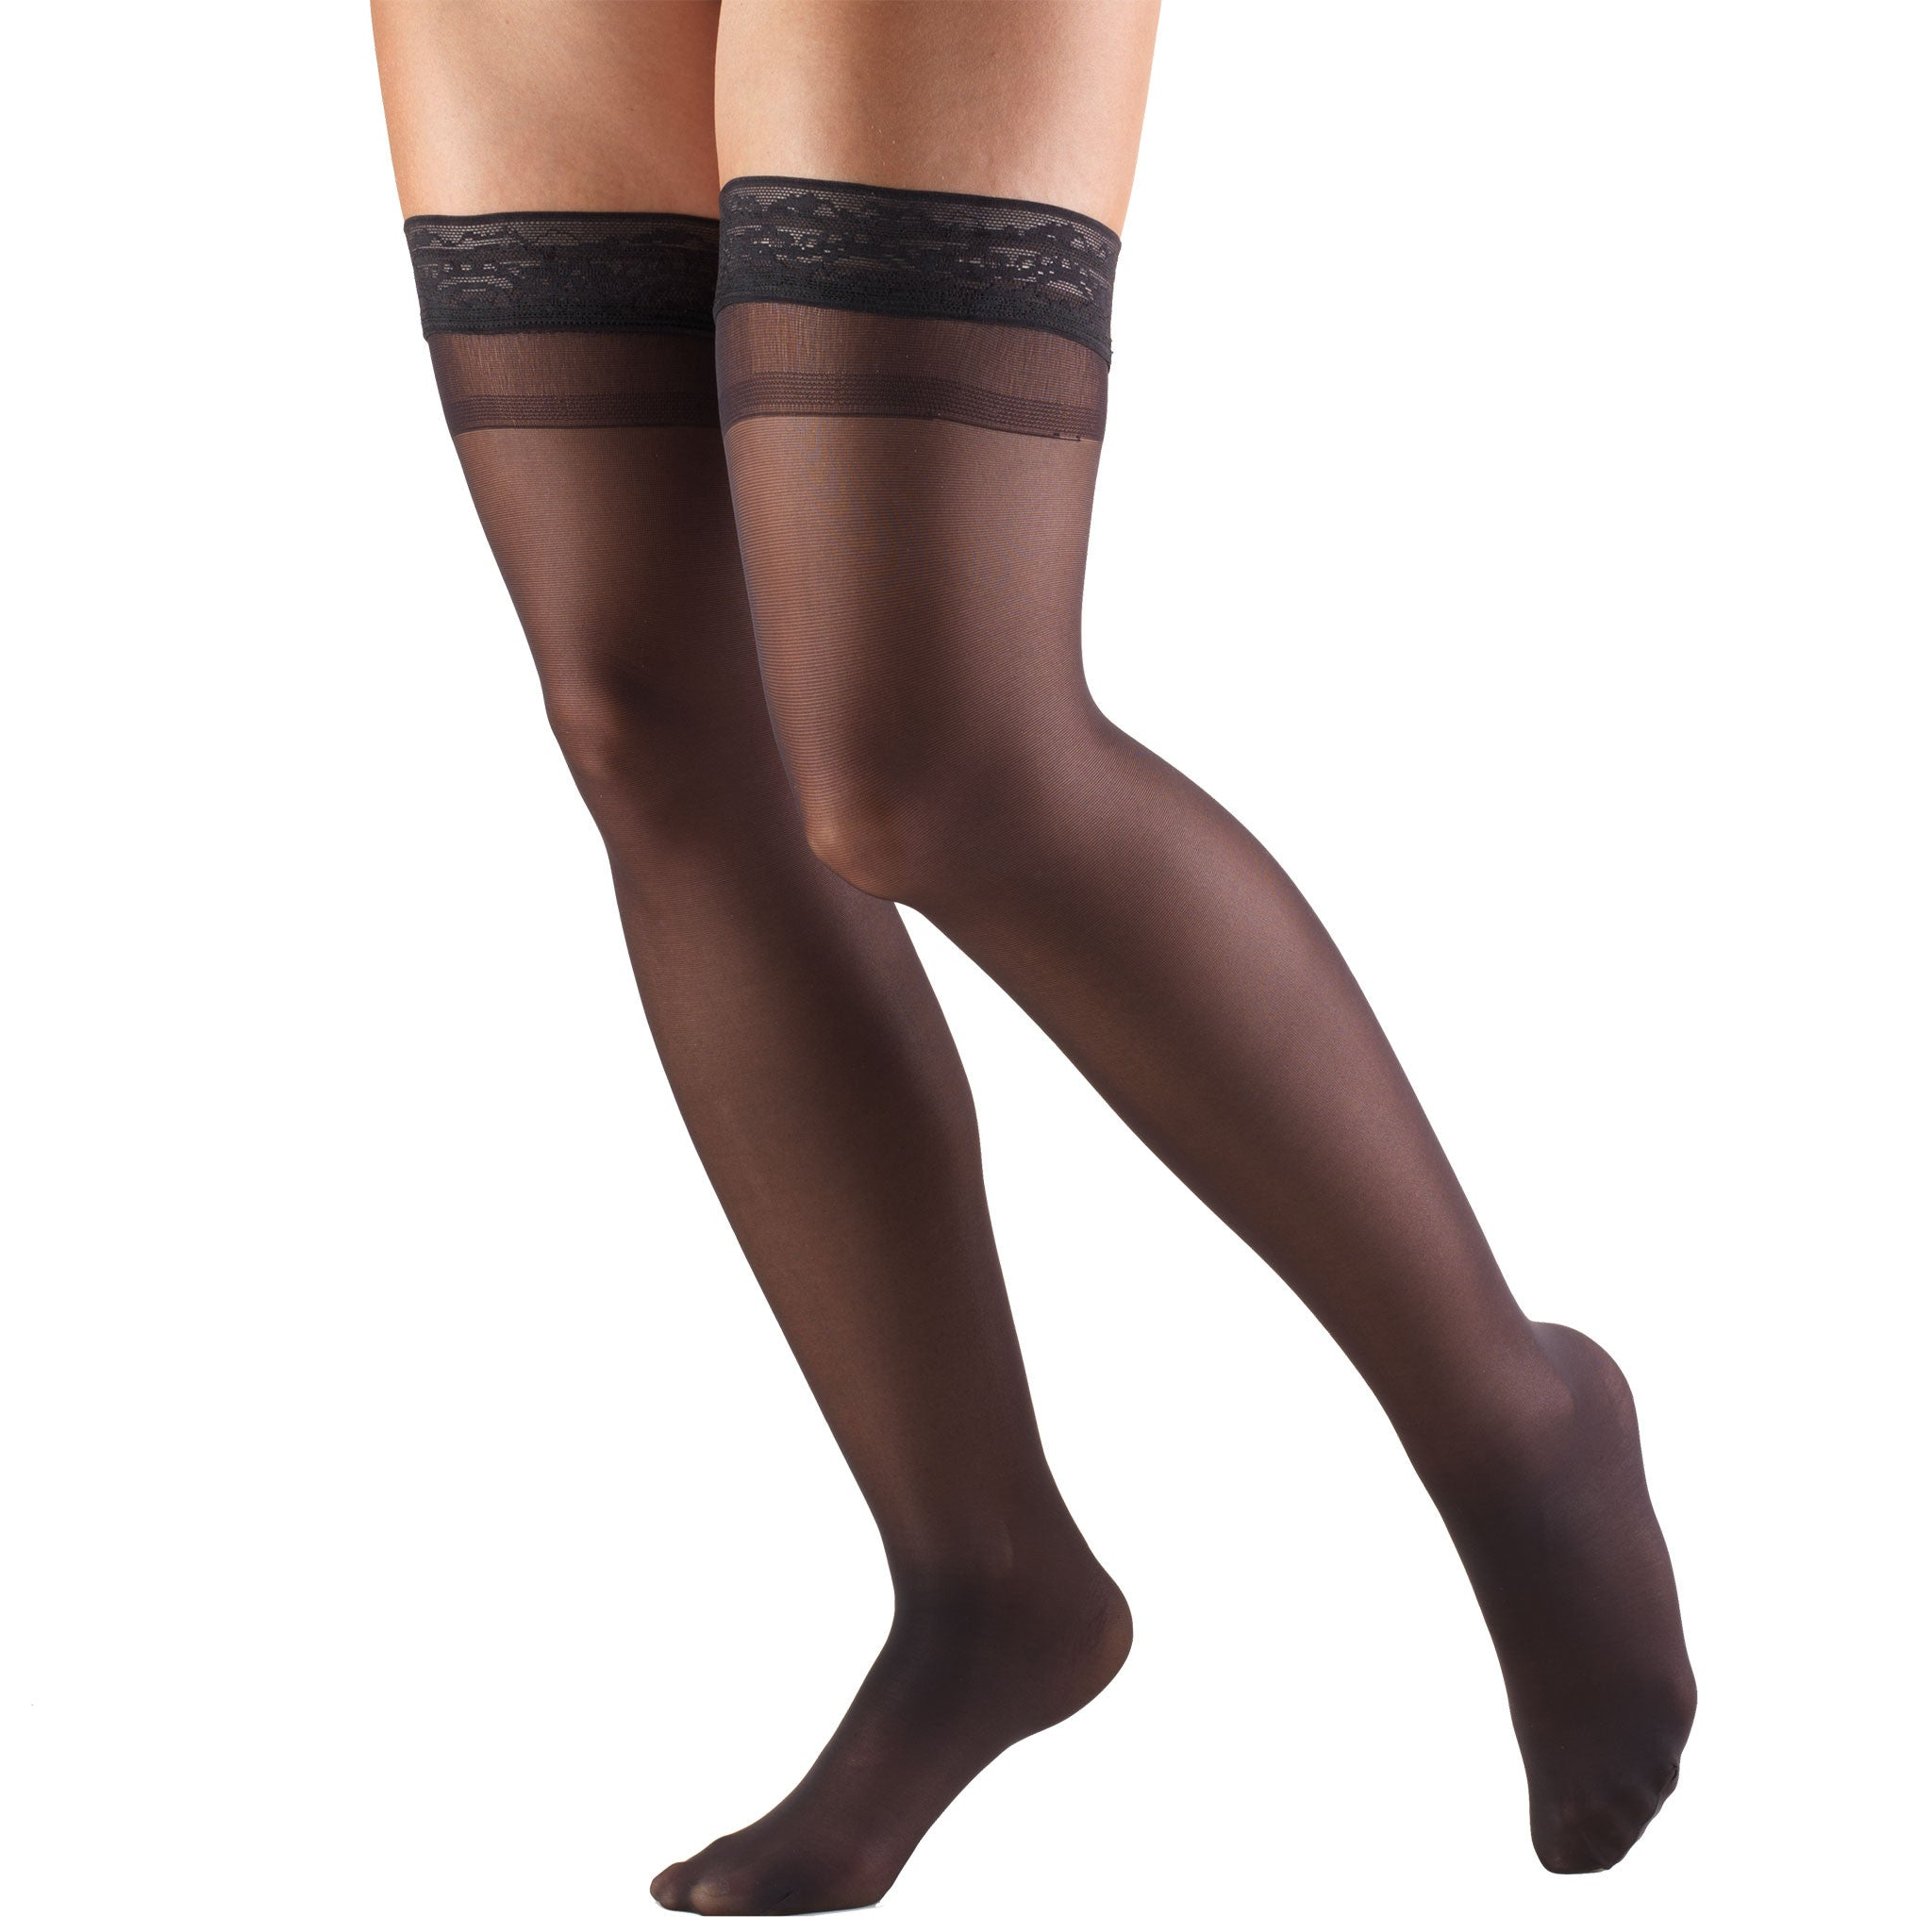 1764 Ladies' Thigh High Closed Toe Black Pattern Sheer Stocking